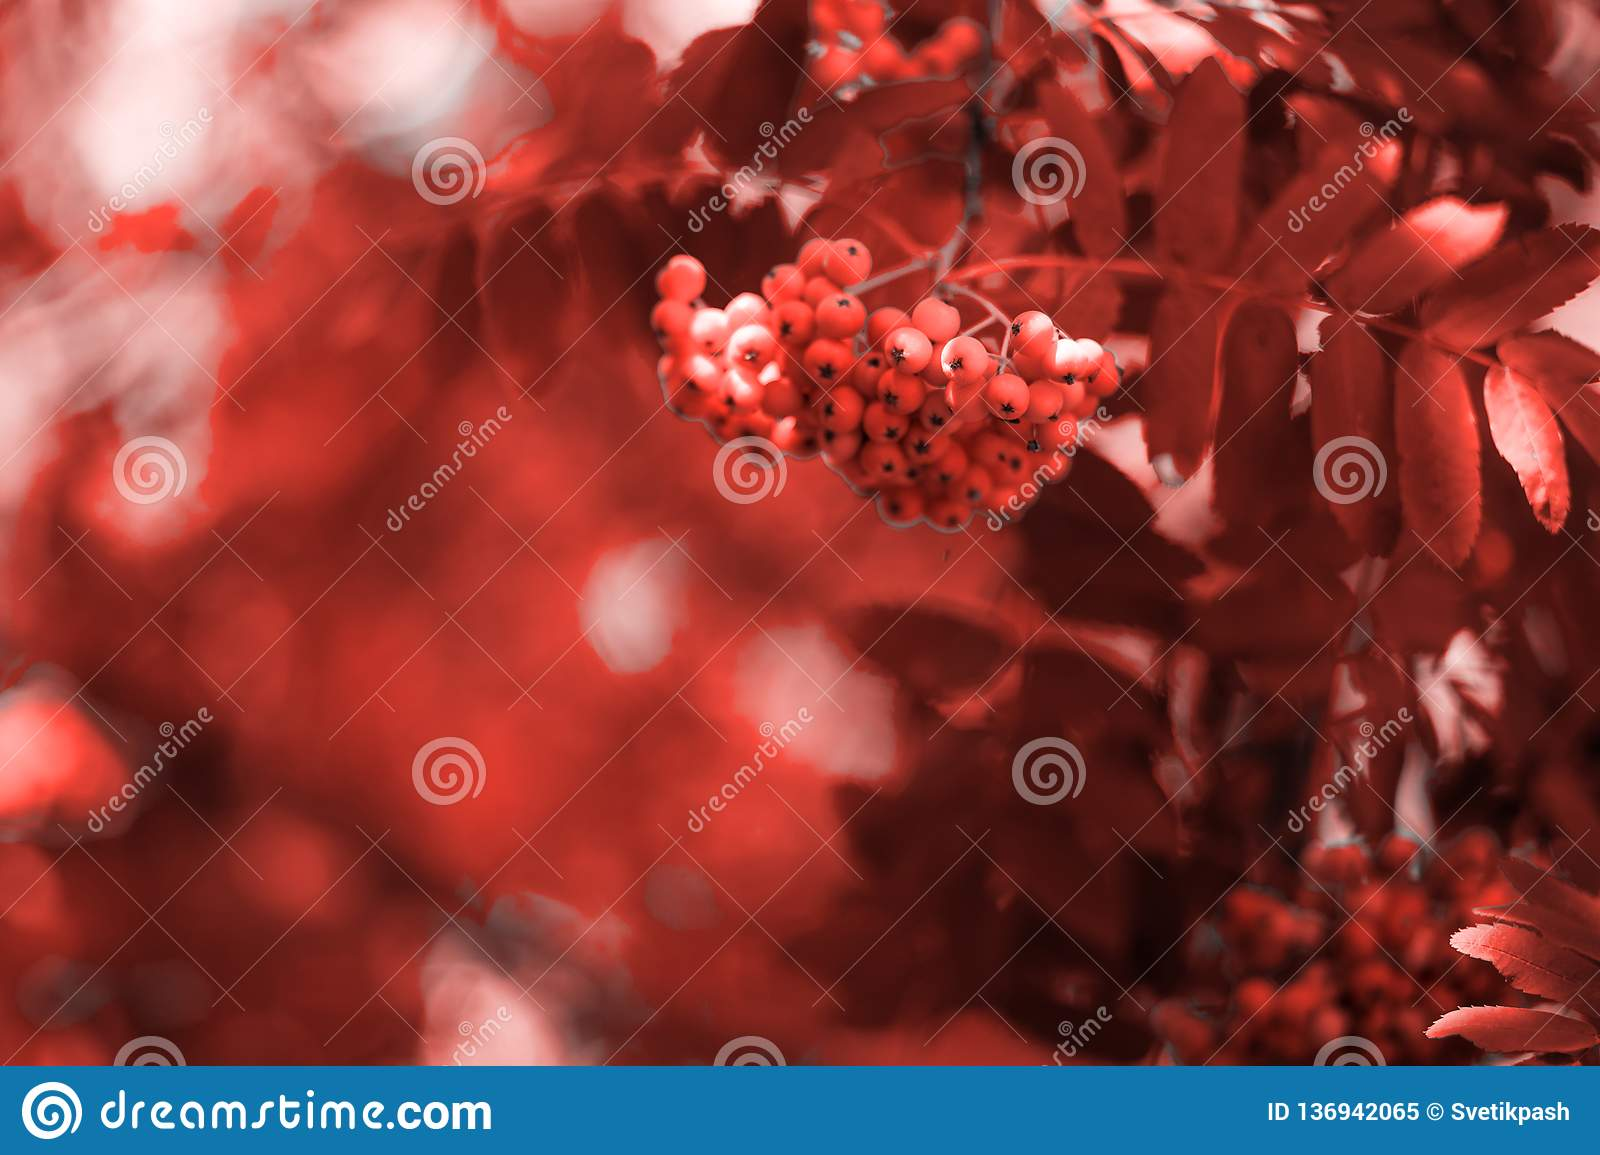 Red Ashberry Nature Background In Orange Toned Phone Or Laptop Wallpaper Background Stock Image Image Of Fresh Nature 136942065